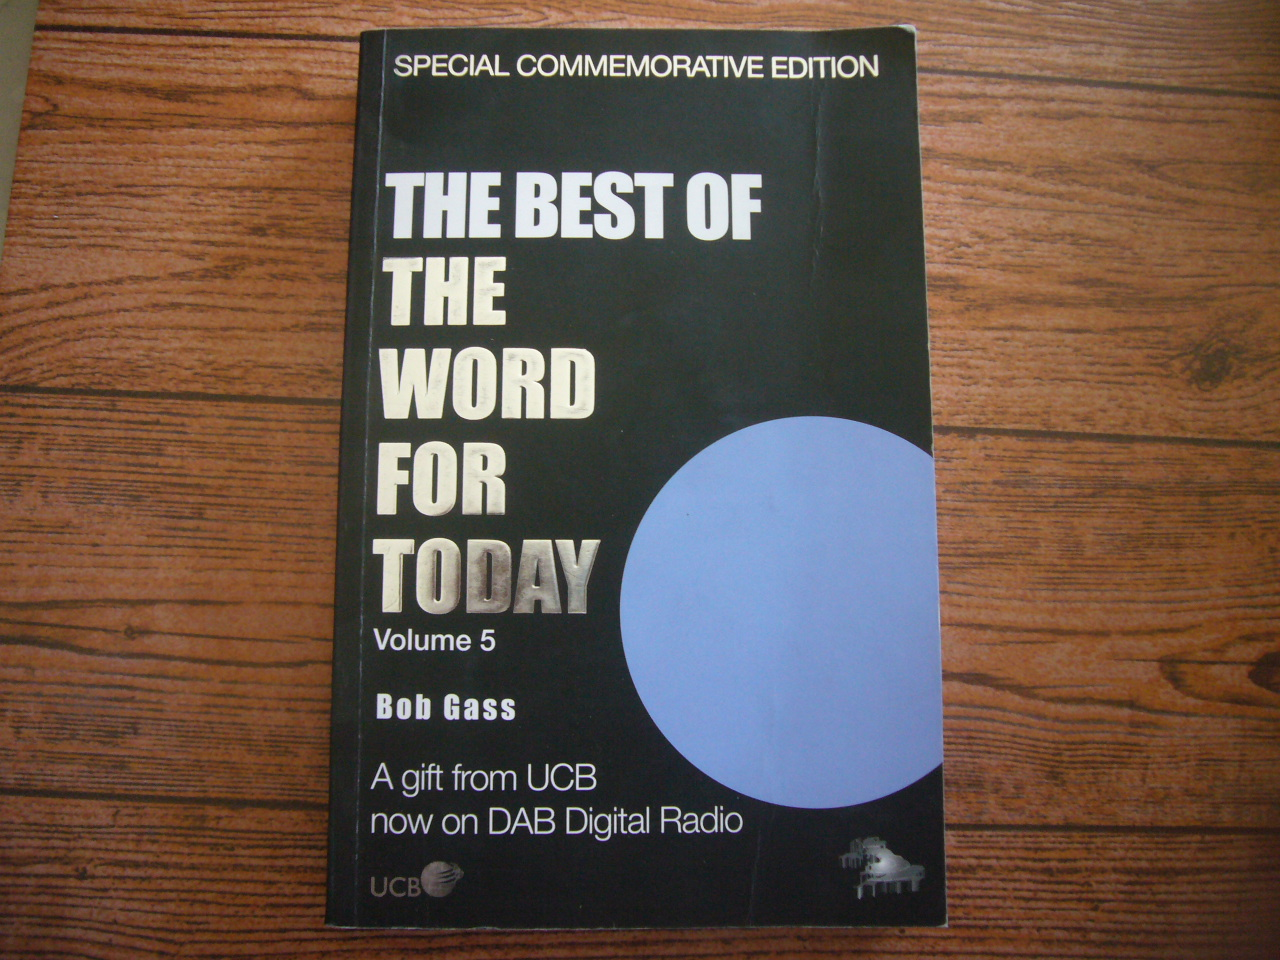 The Best of the Word For Today Volume 5